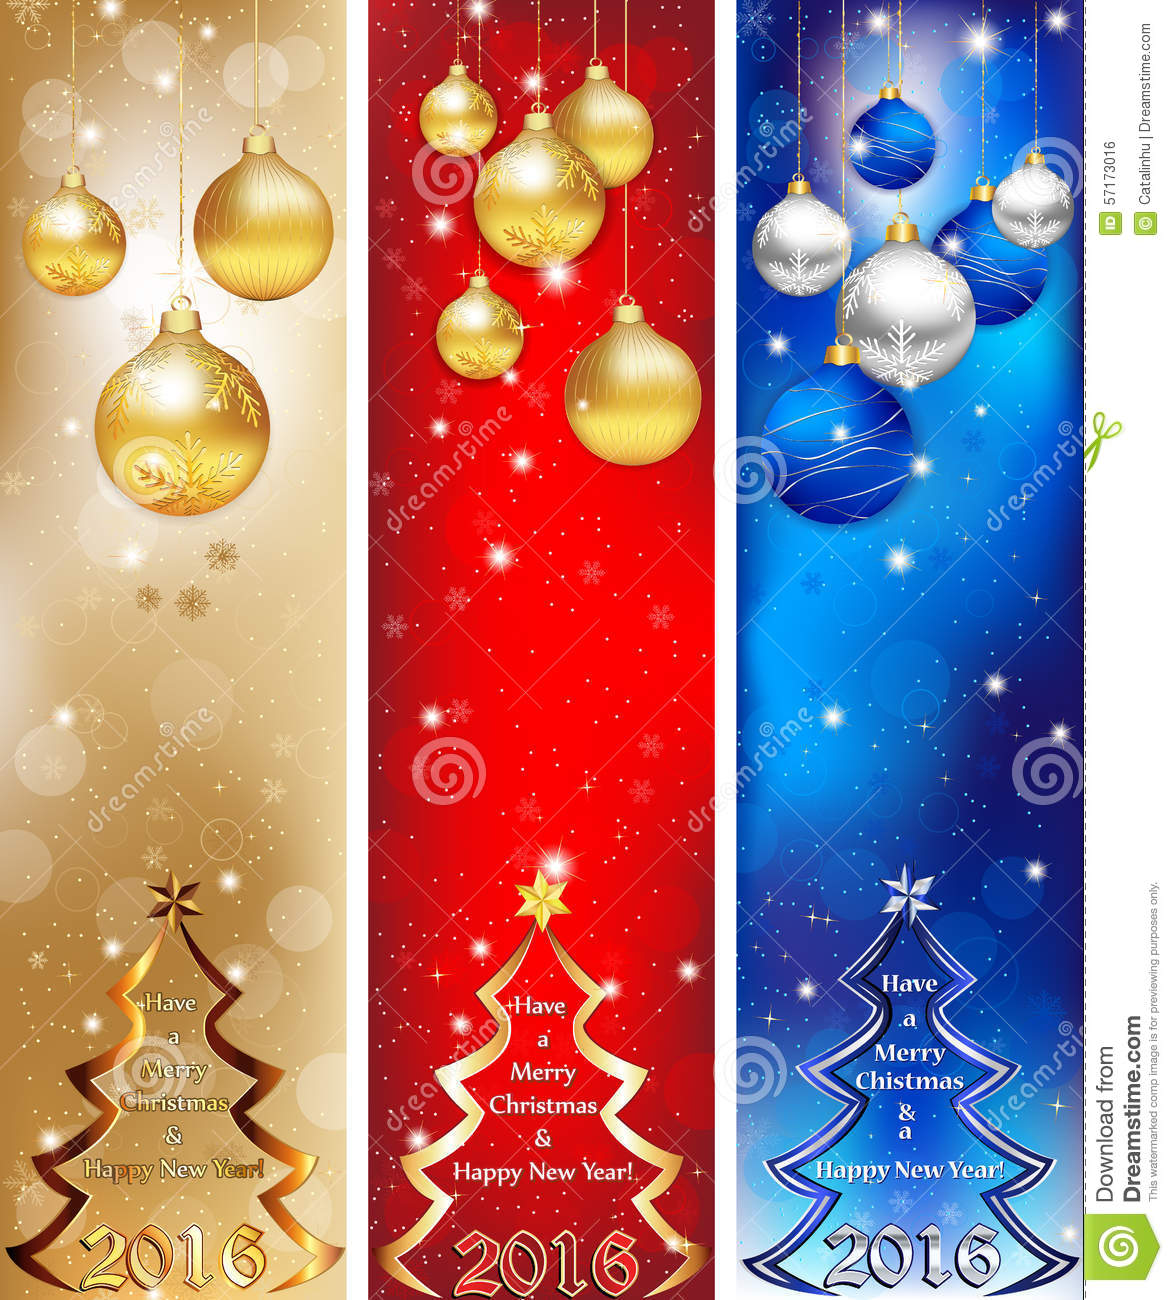 Christmas Tree Colour Schemes 2014: Skyscraper Web Banner Set For 2016 Winter Holiday Stock